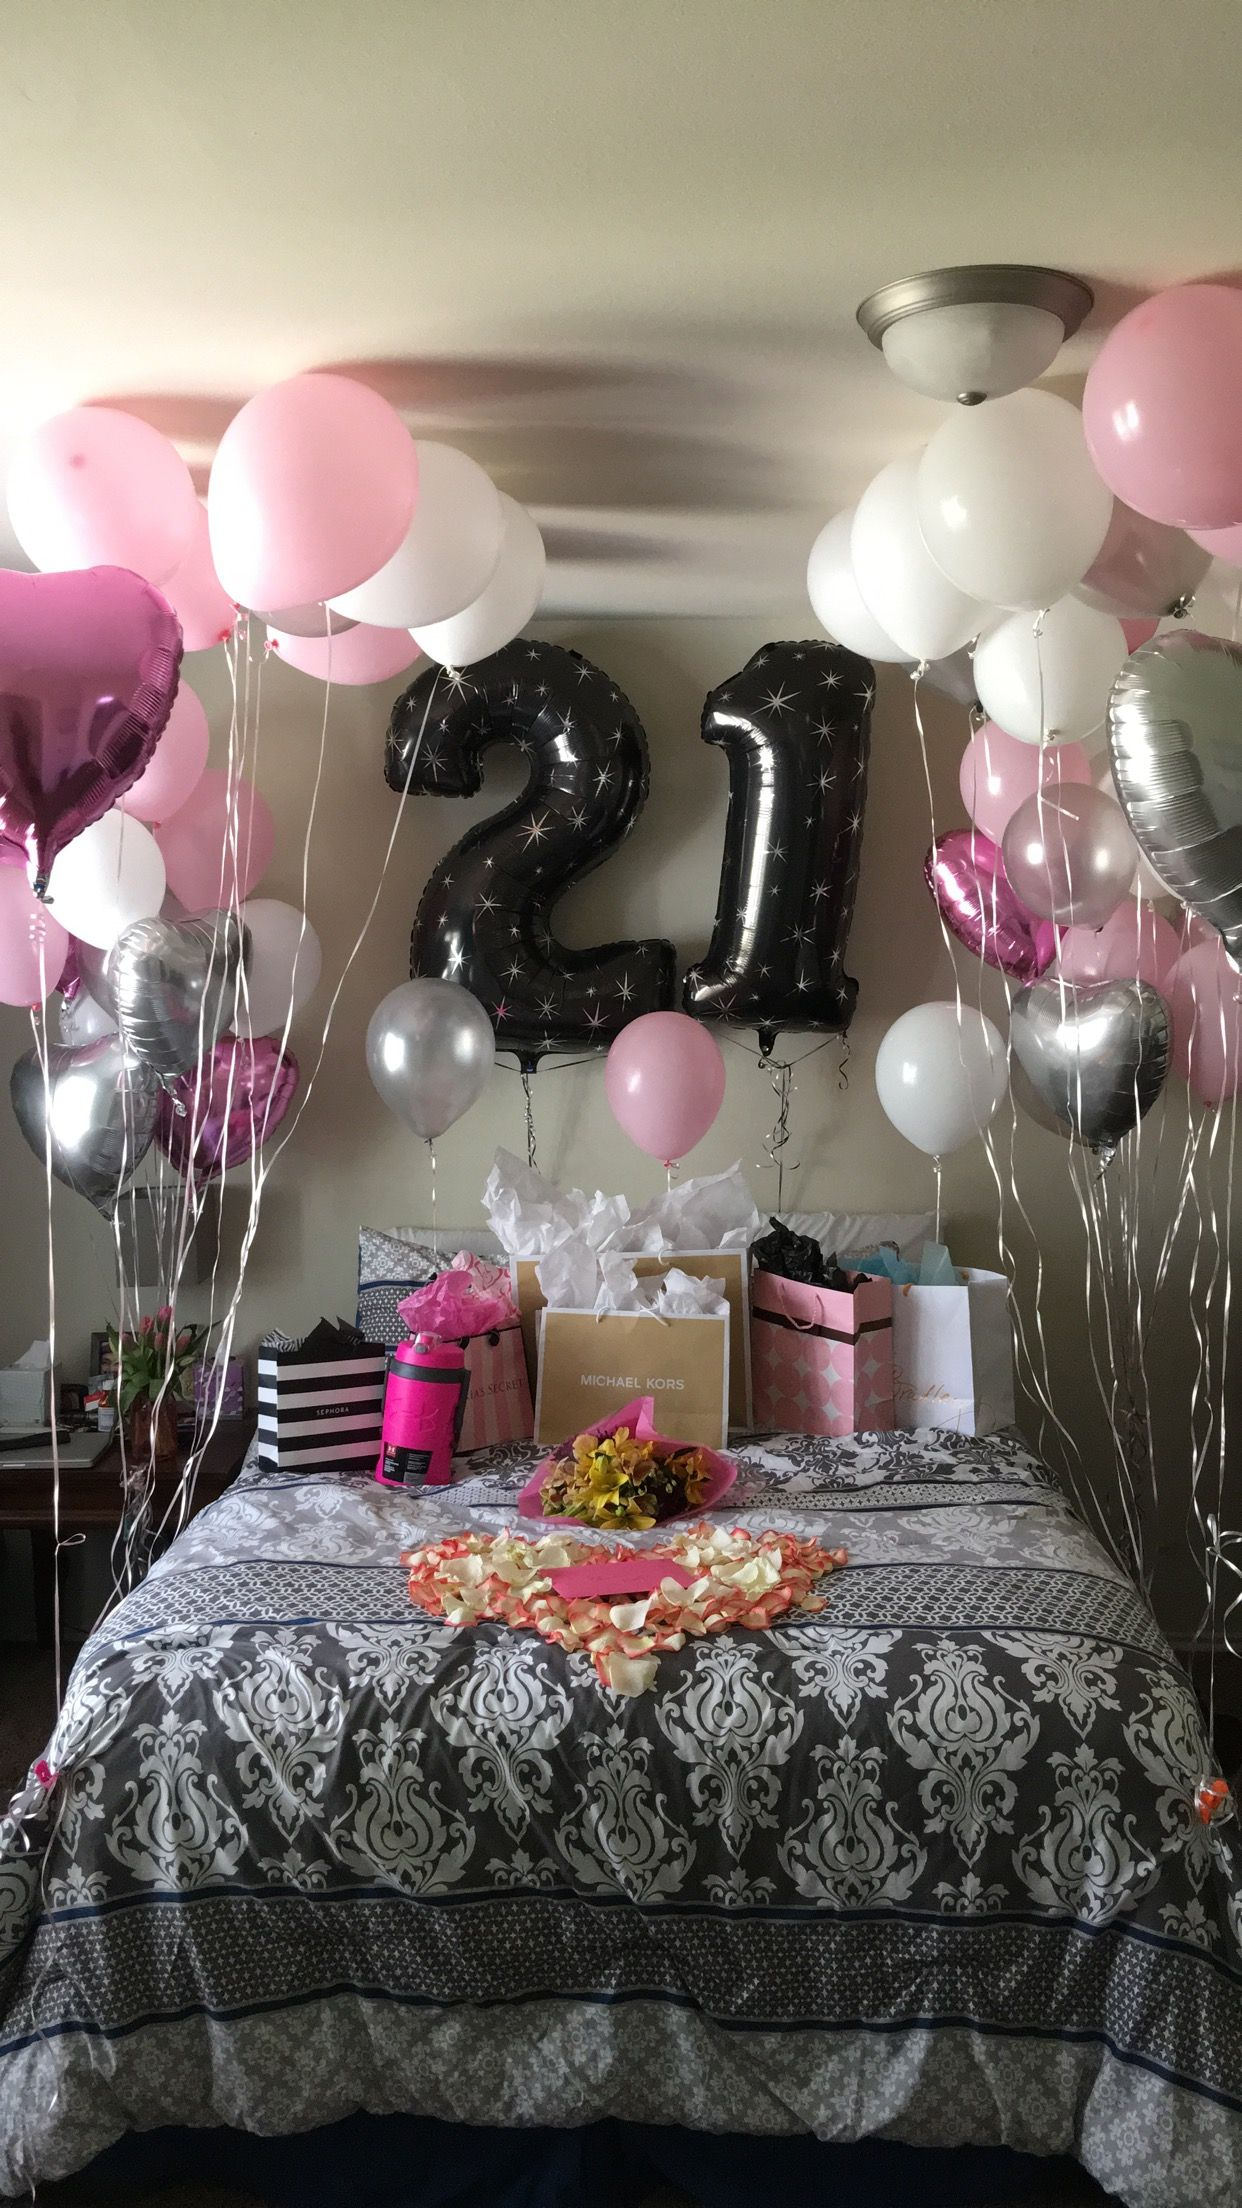 21st birthday surprise girlfriends birthday pinterest for Room decor ideas for husband birthday